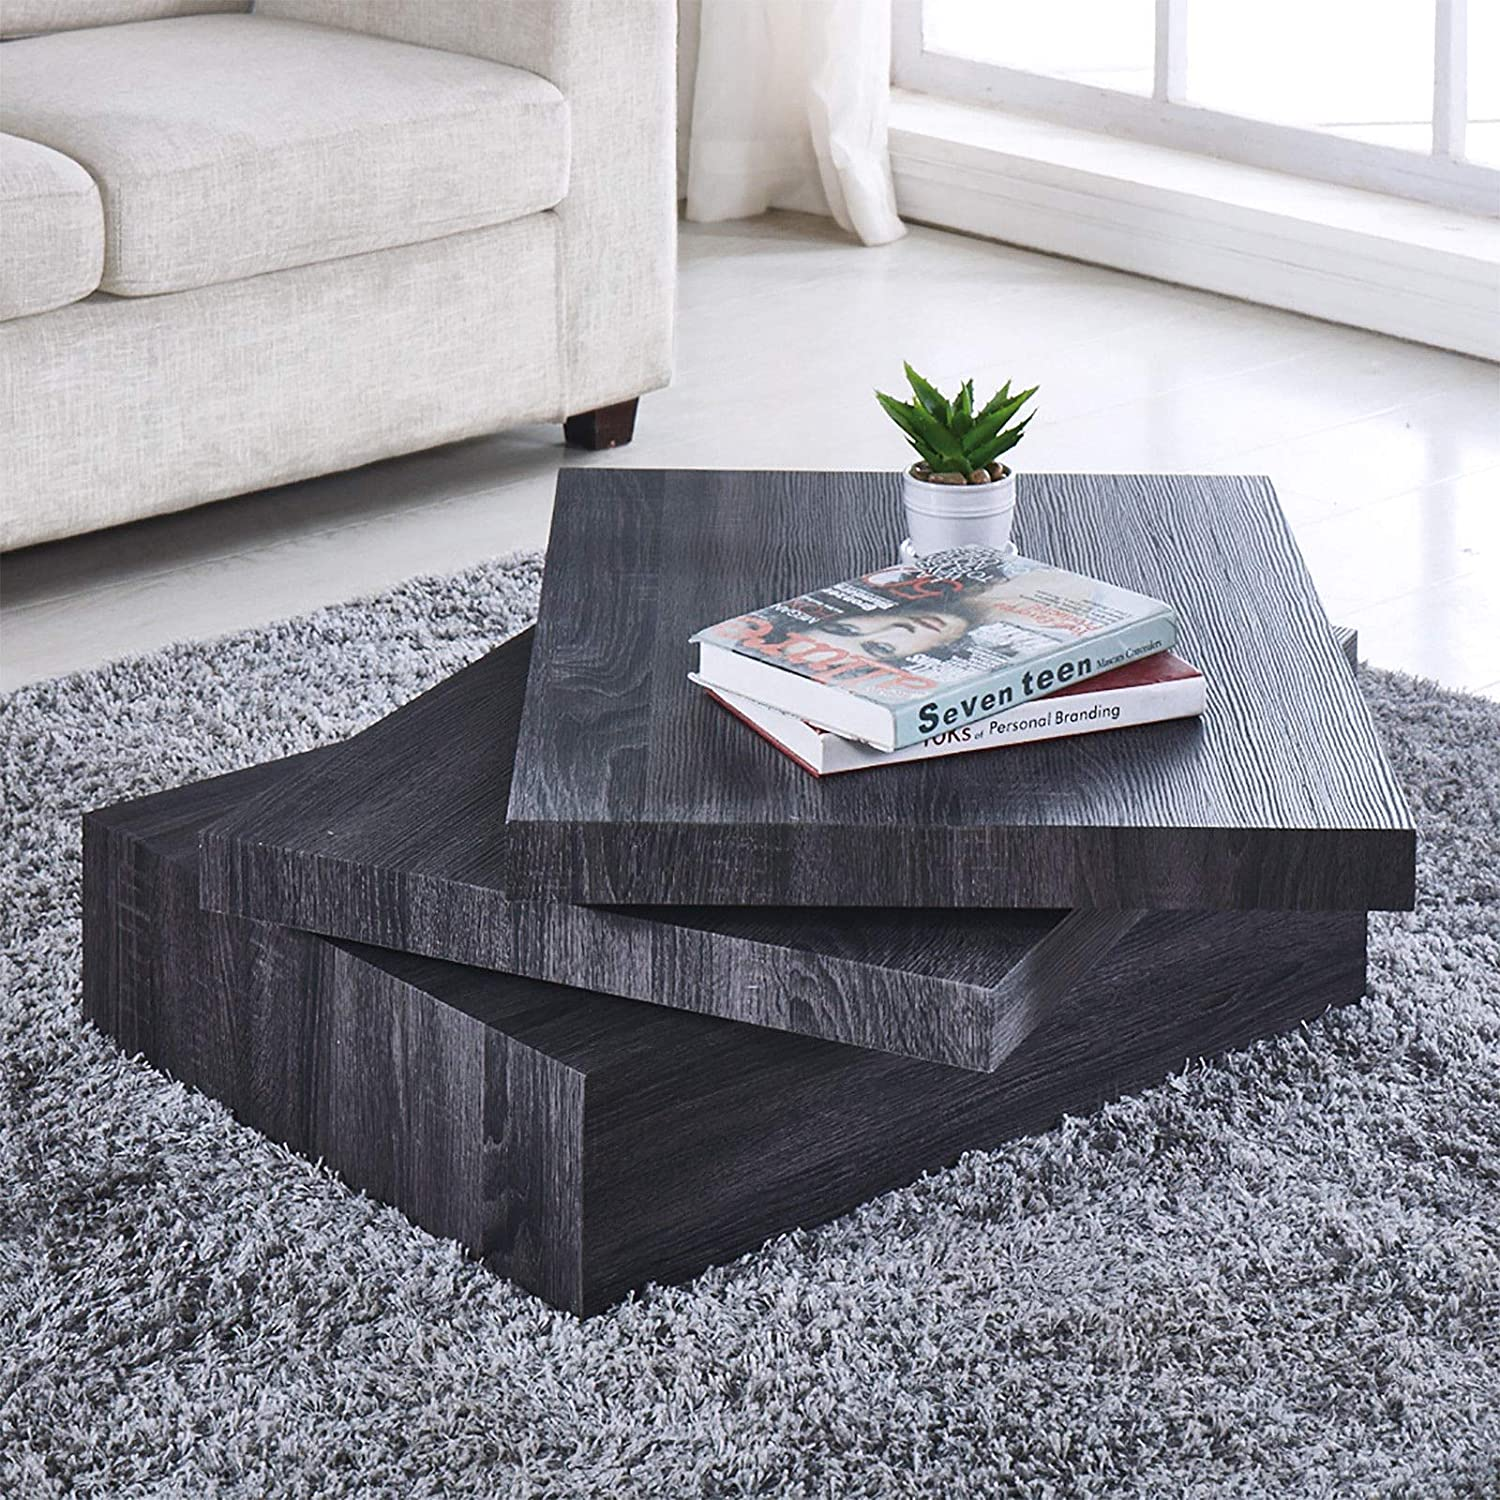 Black Coffee Table Oak Square Rotating Contemporary Modern Living Room Furniture